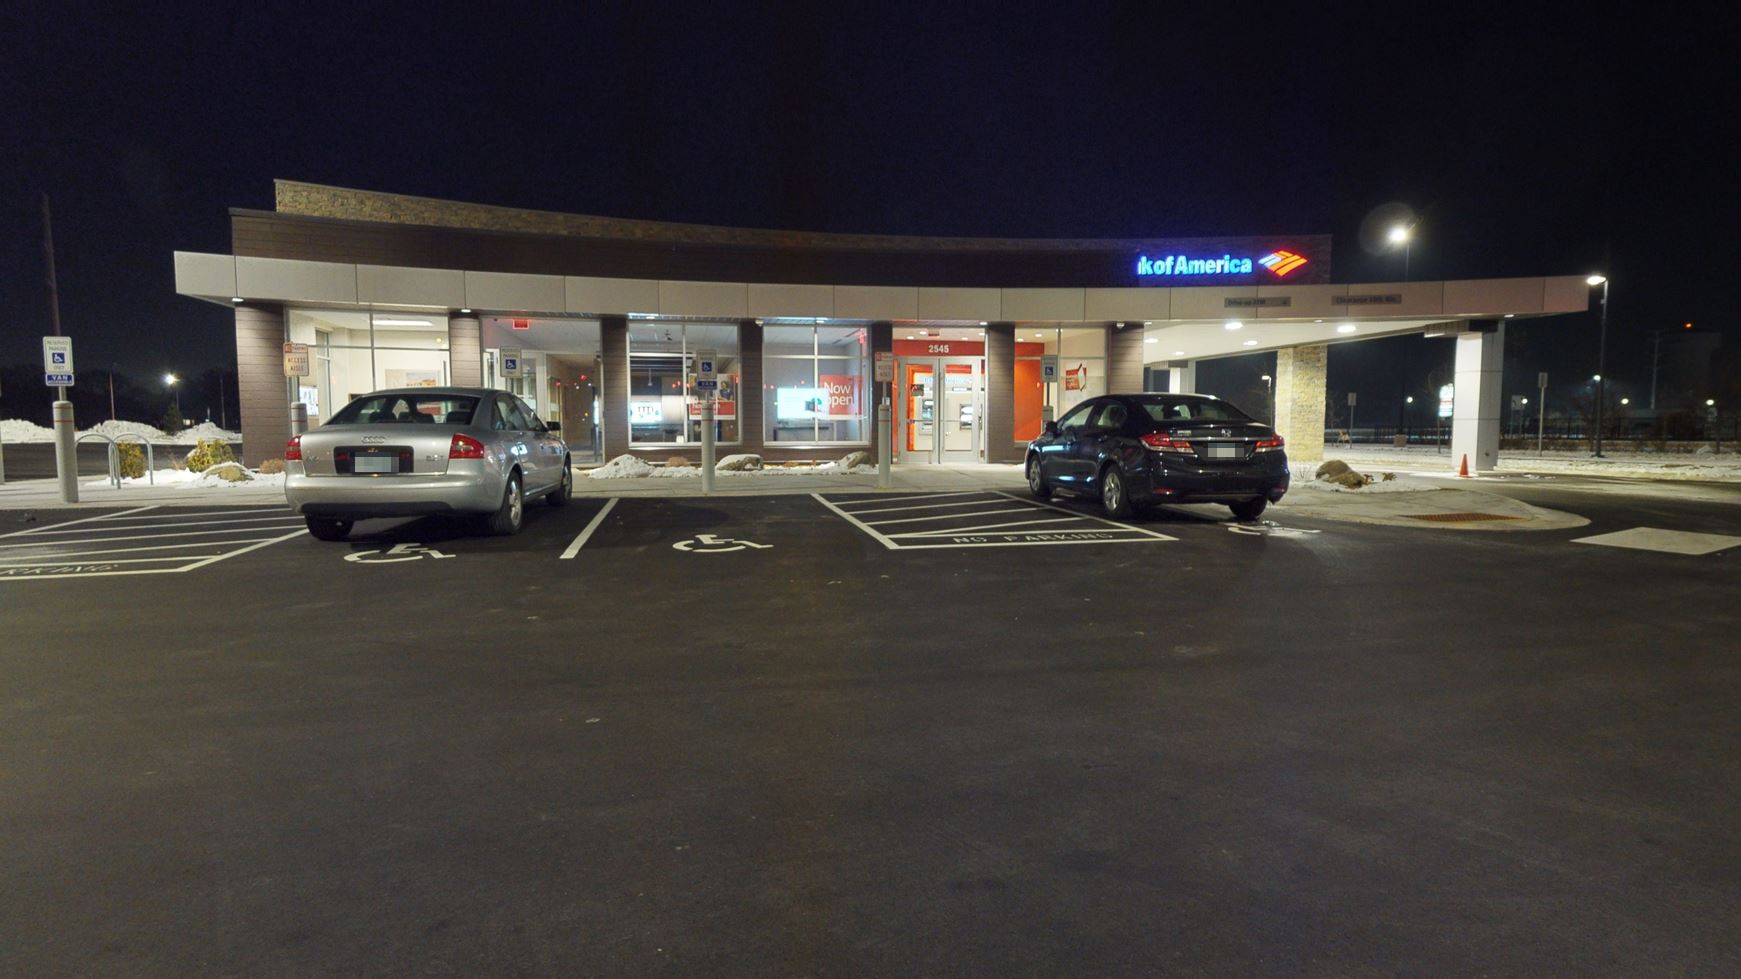 Bank of America financial center with drive-thru ATM   2545 County Road 10, Brooklyn Center, MN 55430